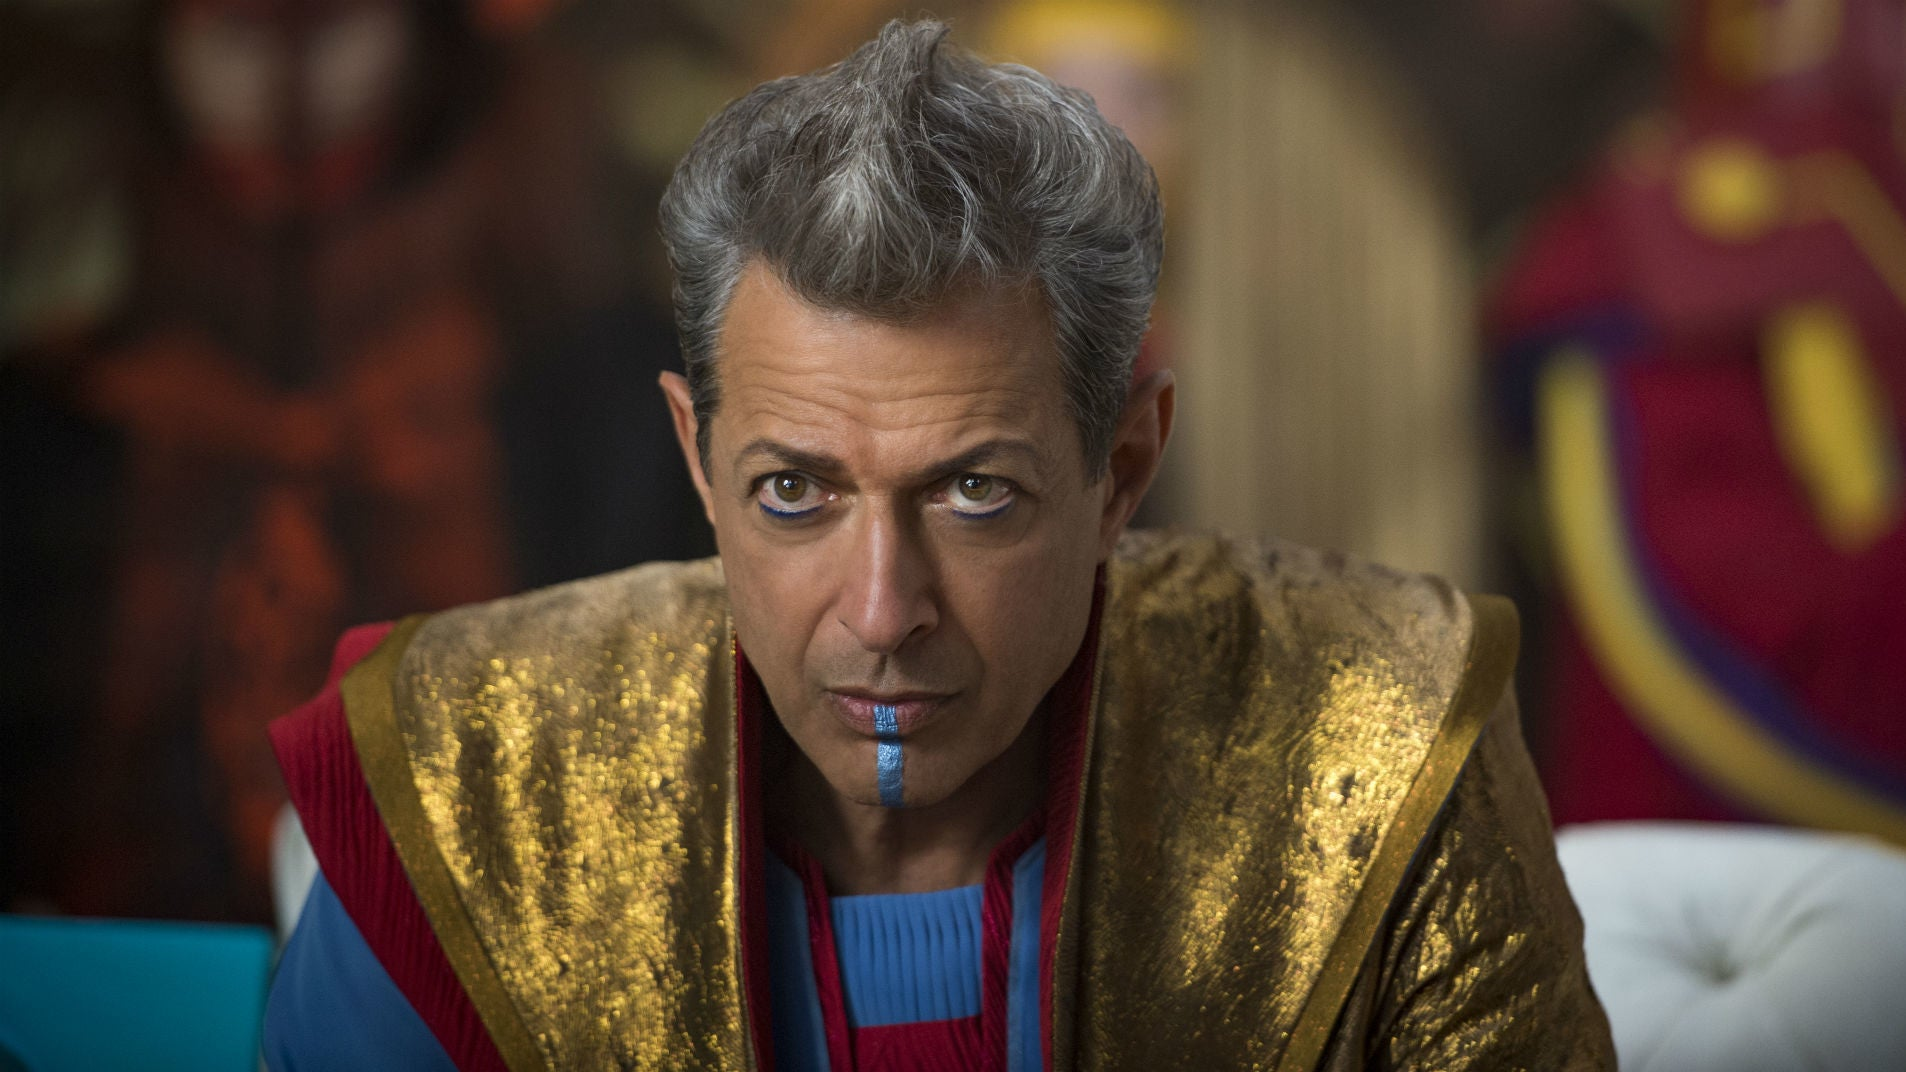 Jeff Goldblum Riffing On The Meaning Of 'Ragnarok' Is Absolutely Delightful